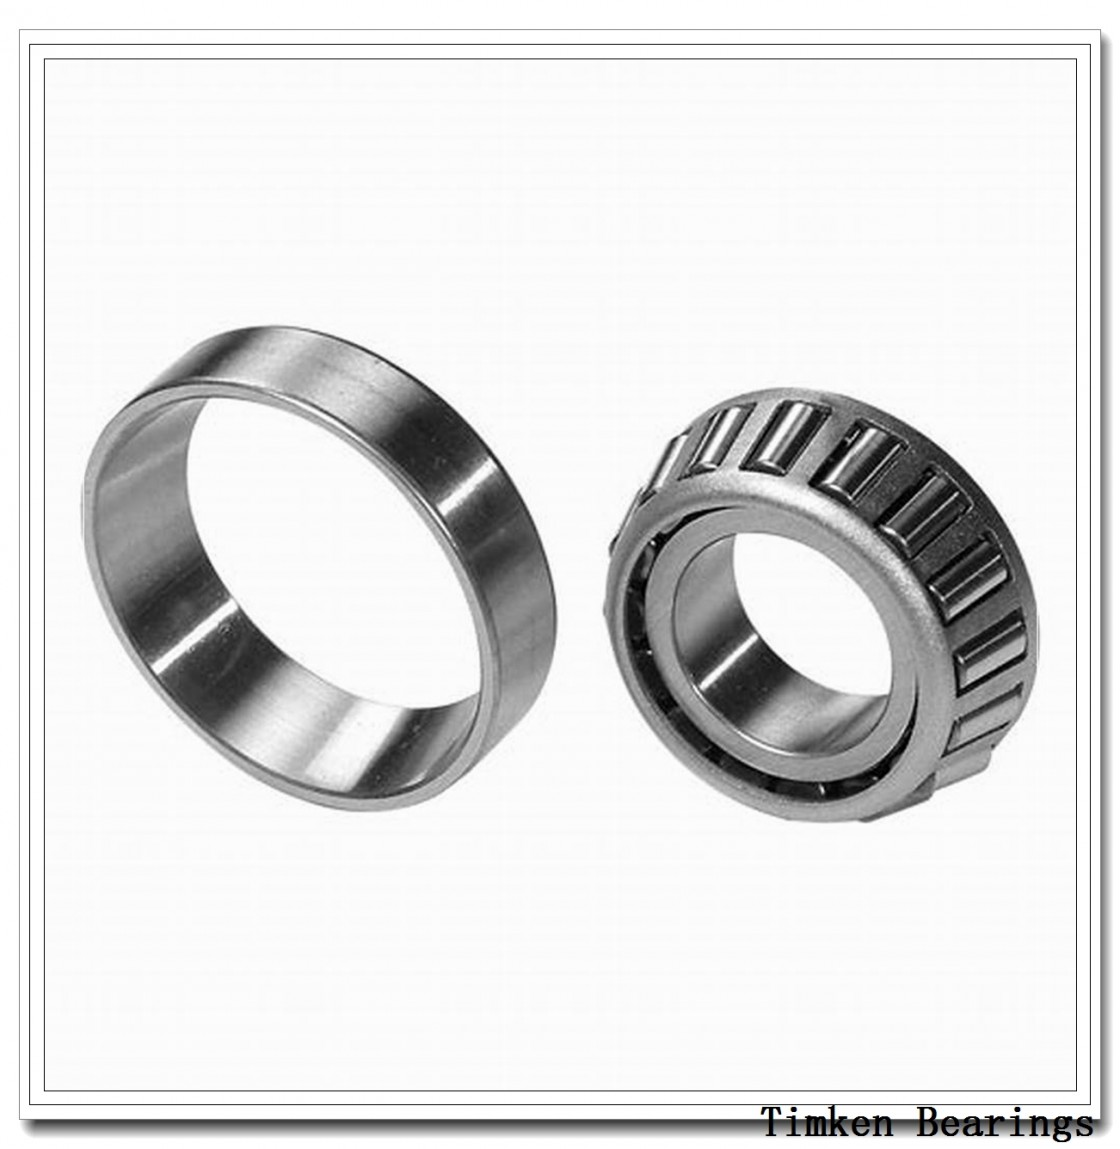 Timken 31307 tapered roller bearings